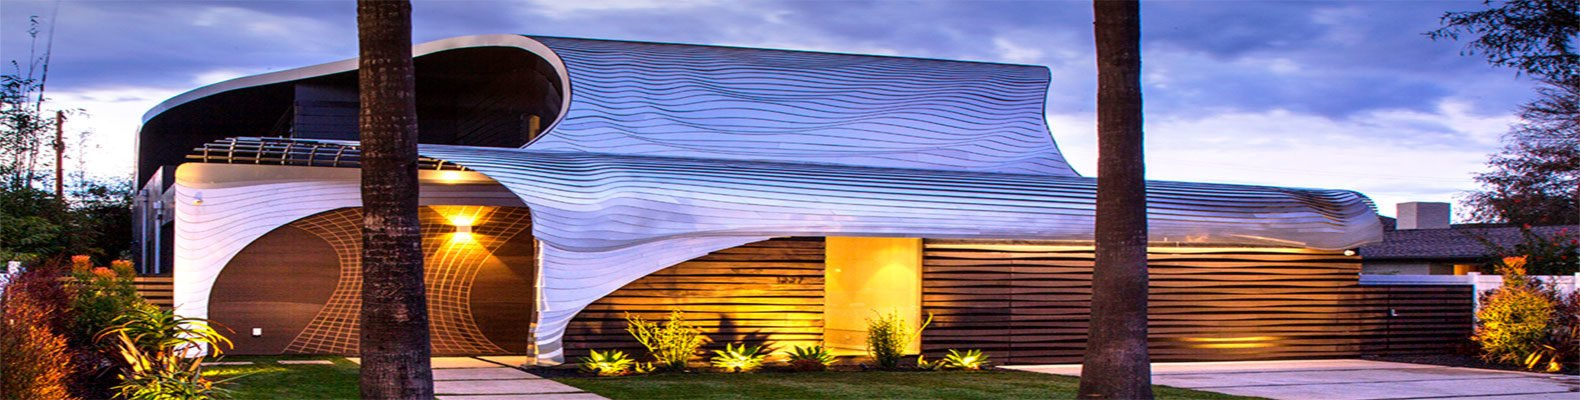 great home designs. Hokusai s  The Great Wave inspires beautiful home design in California Inhabitat Green Design Innovation Architecture Building